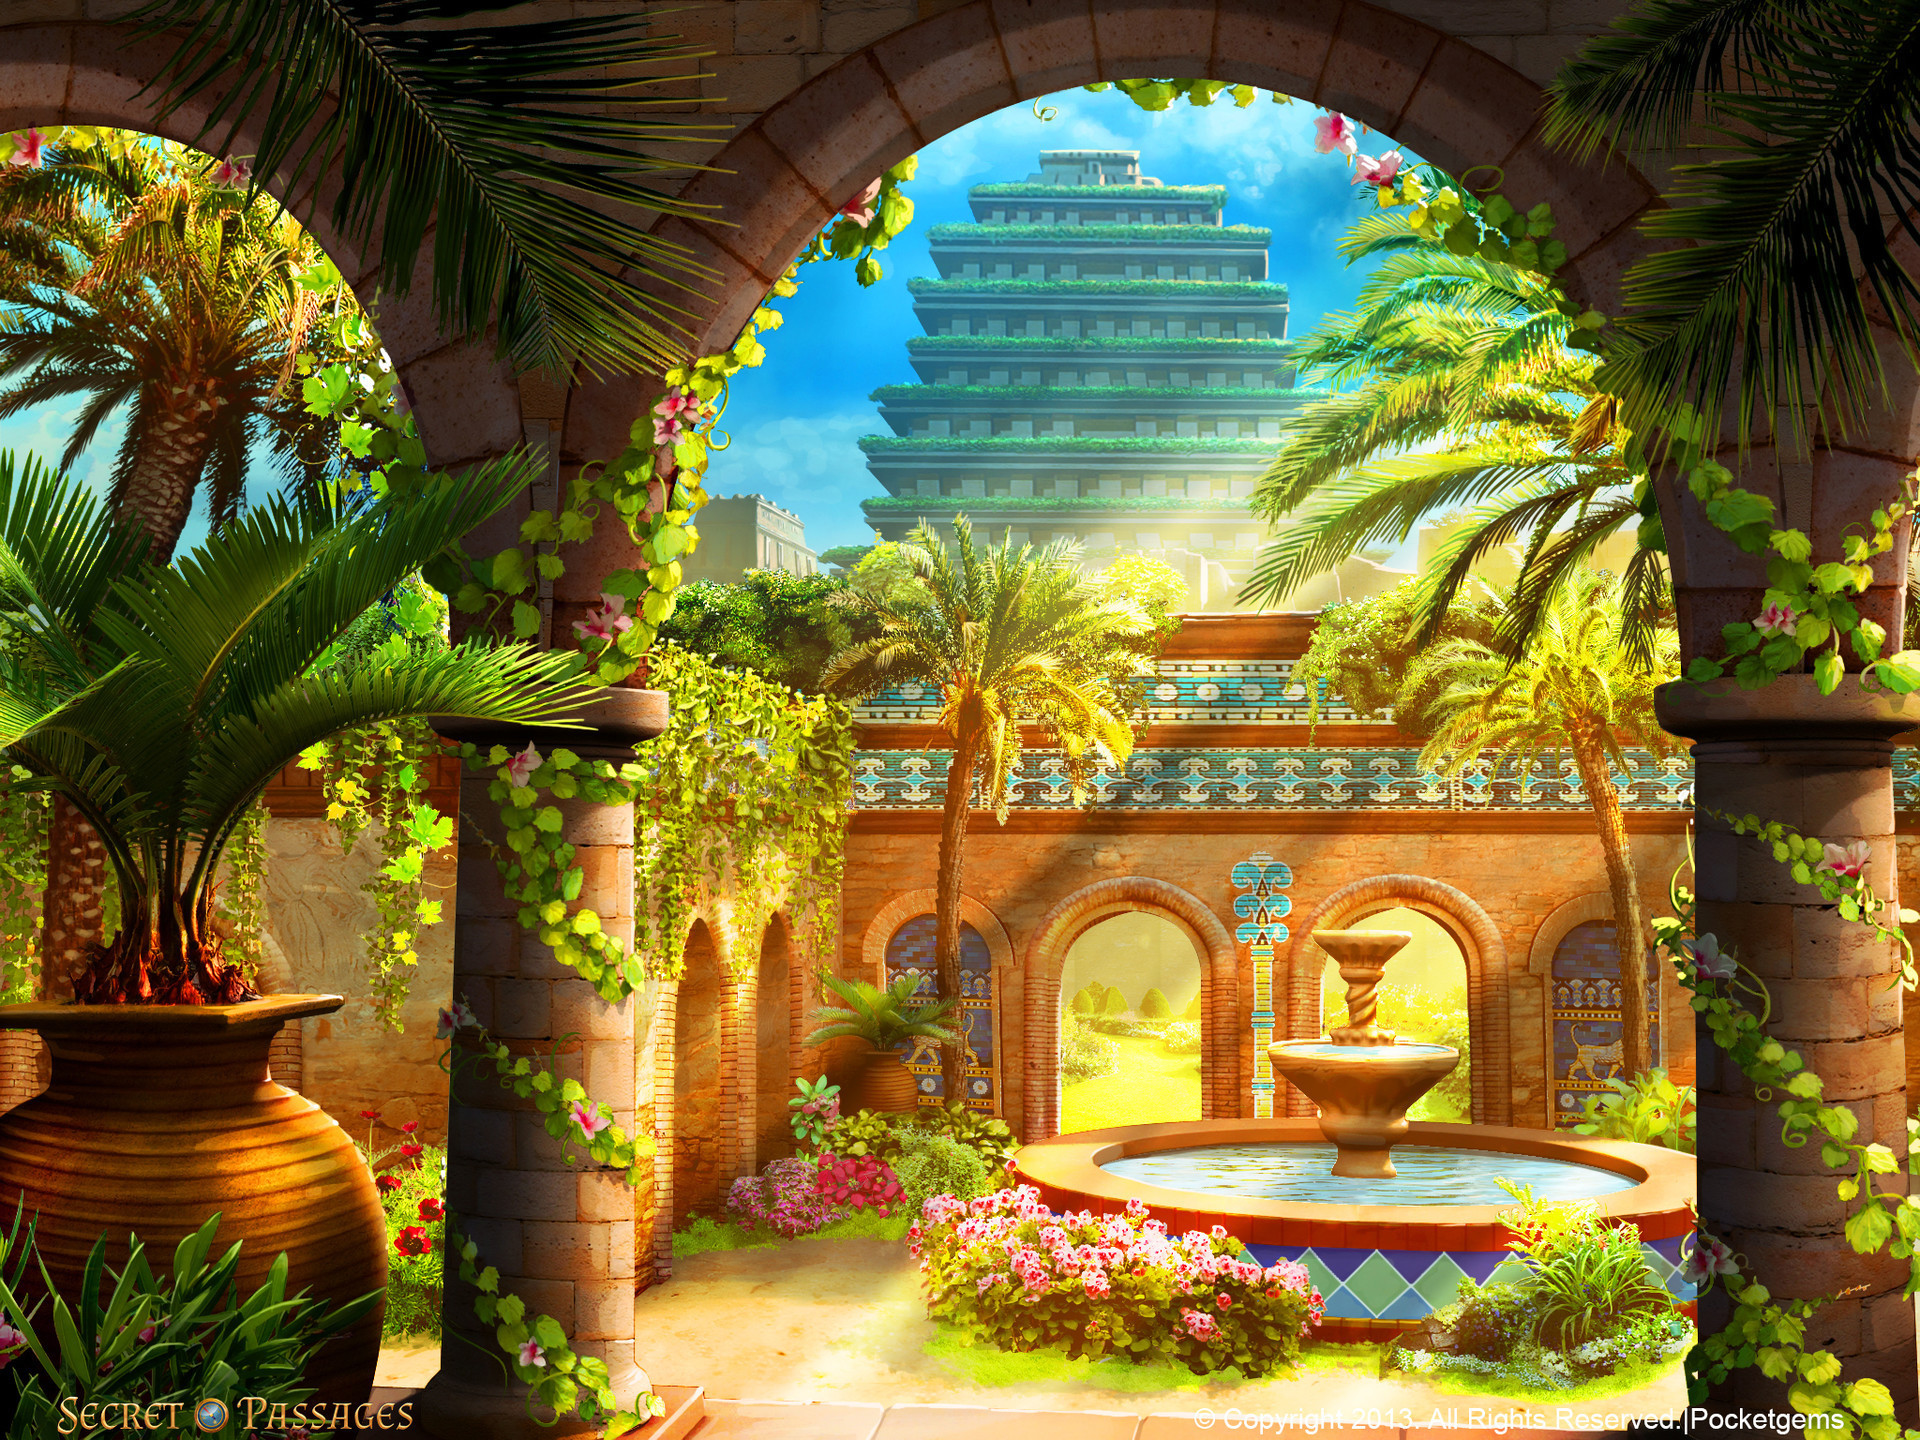 Hanging gardens of babylon wallpaper 47 images for When was the hanging gardens of babylon destroyed